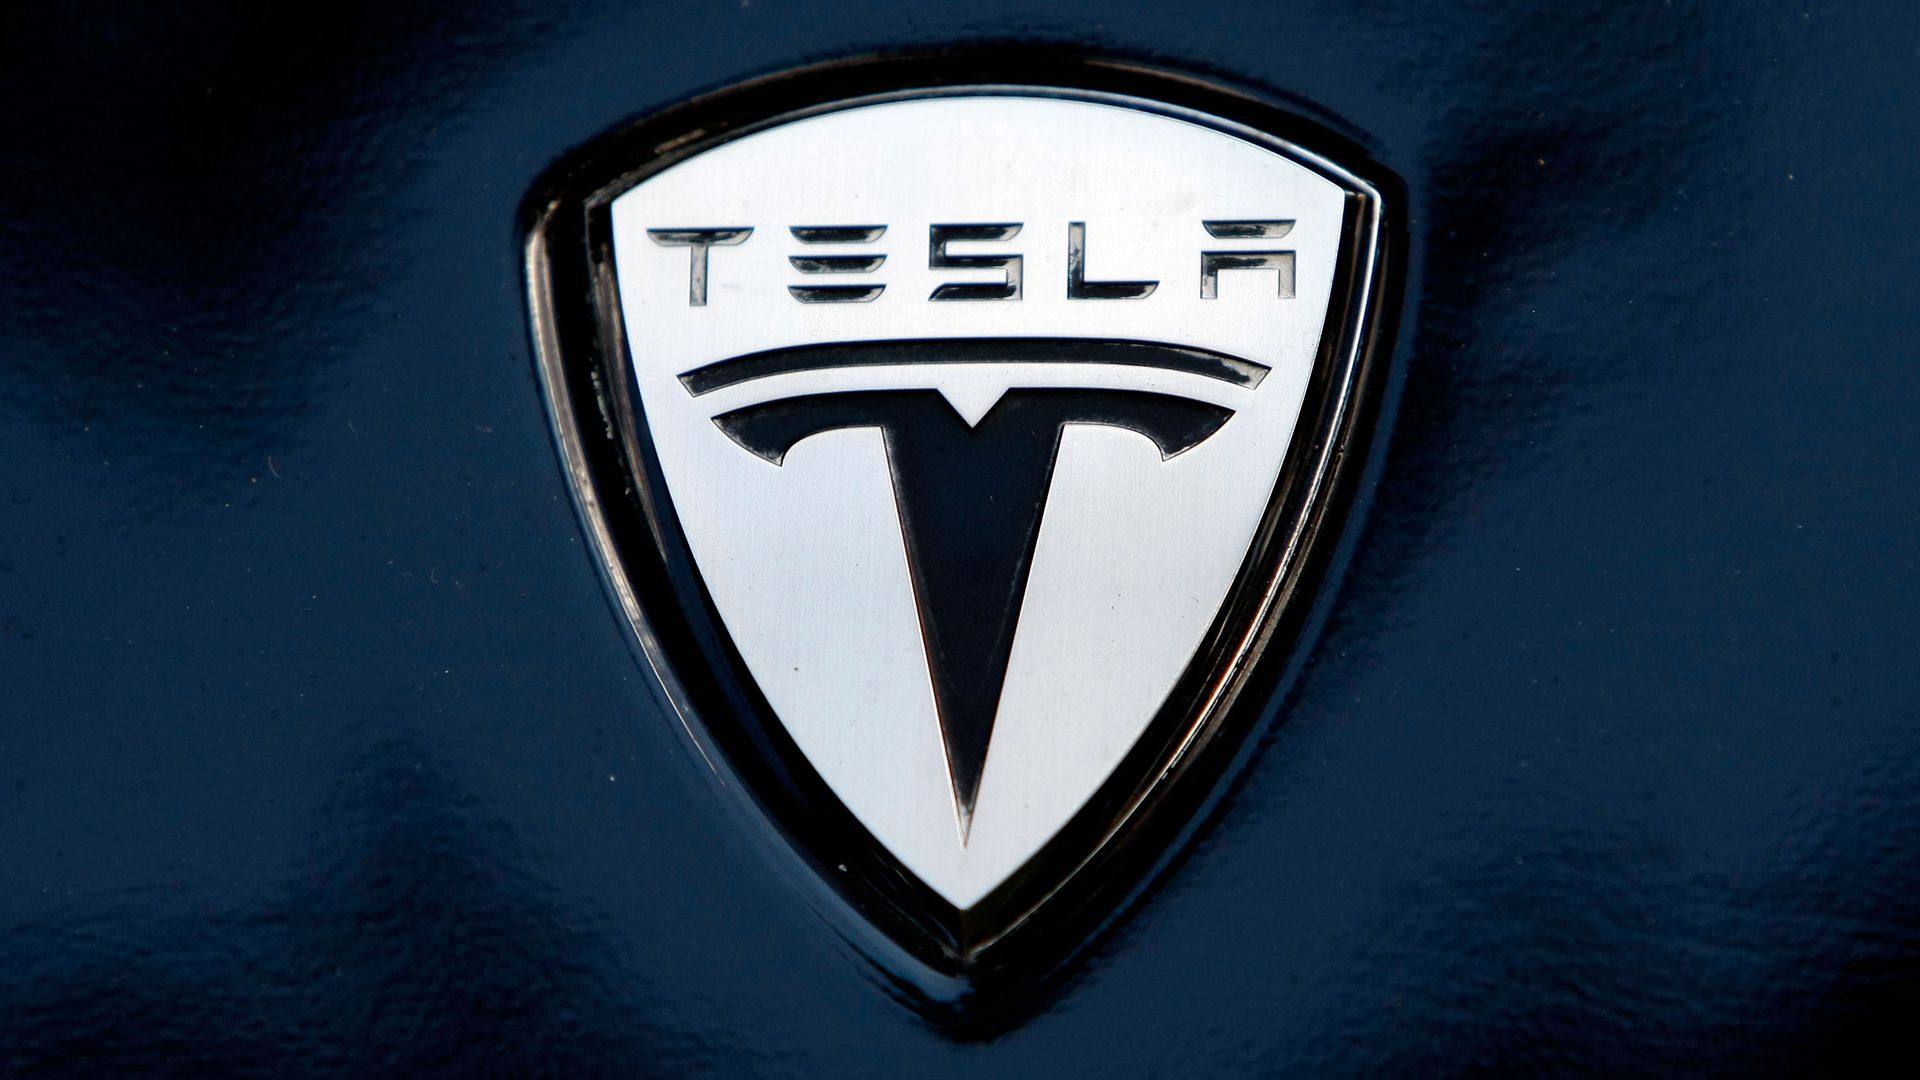 Photo of Tesla's electric car logo